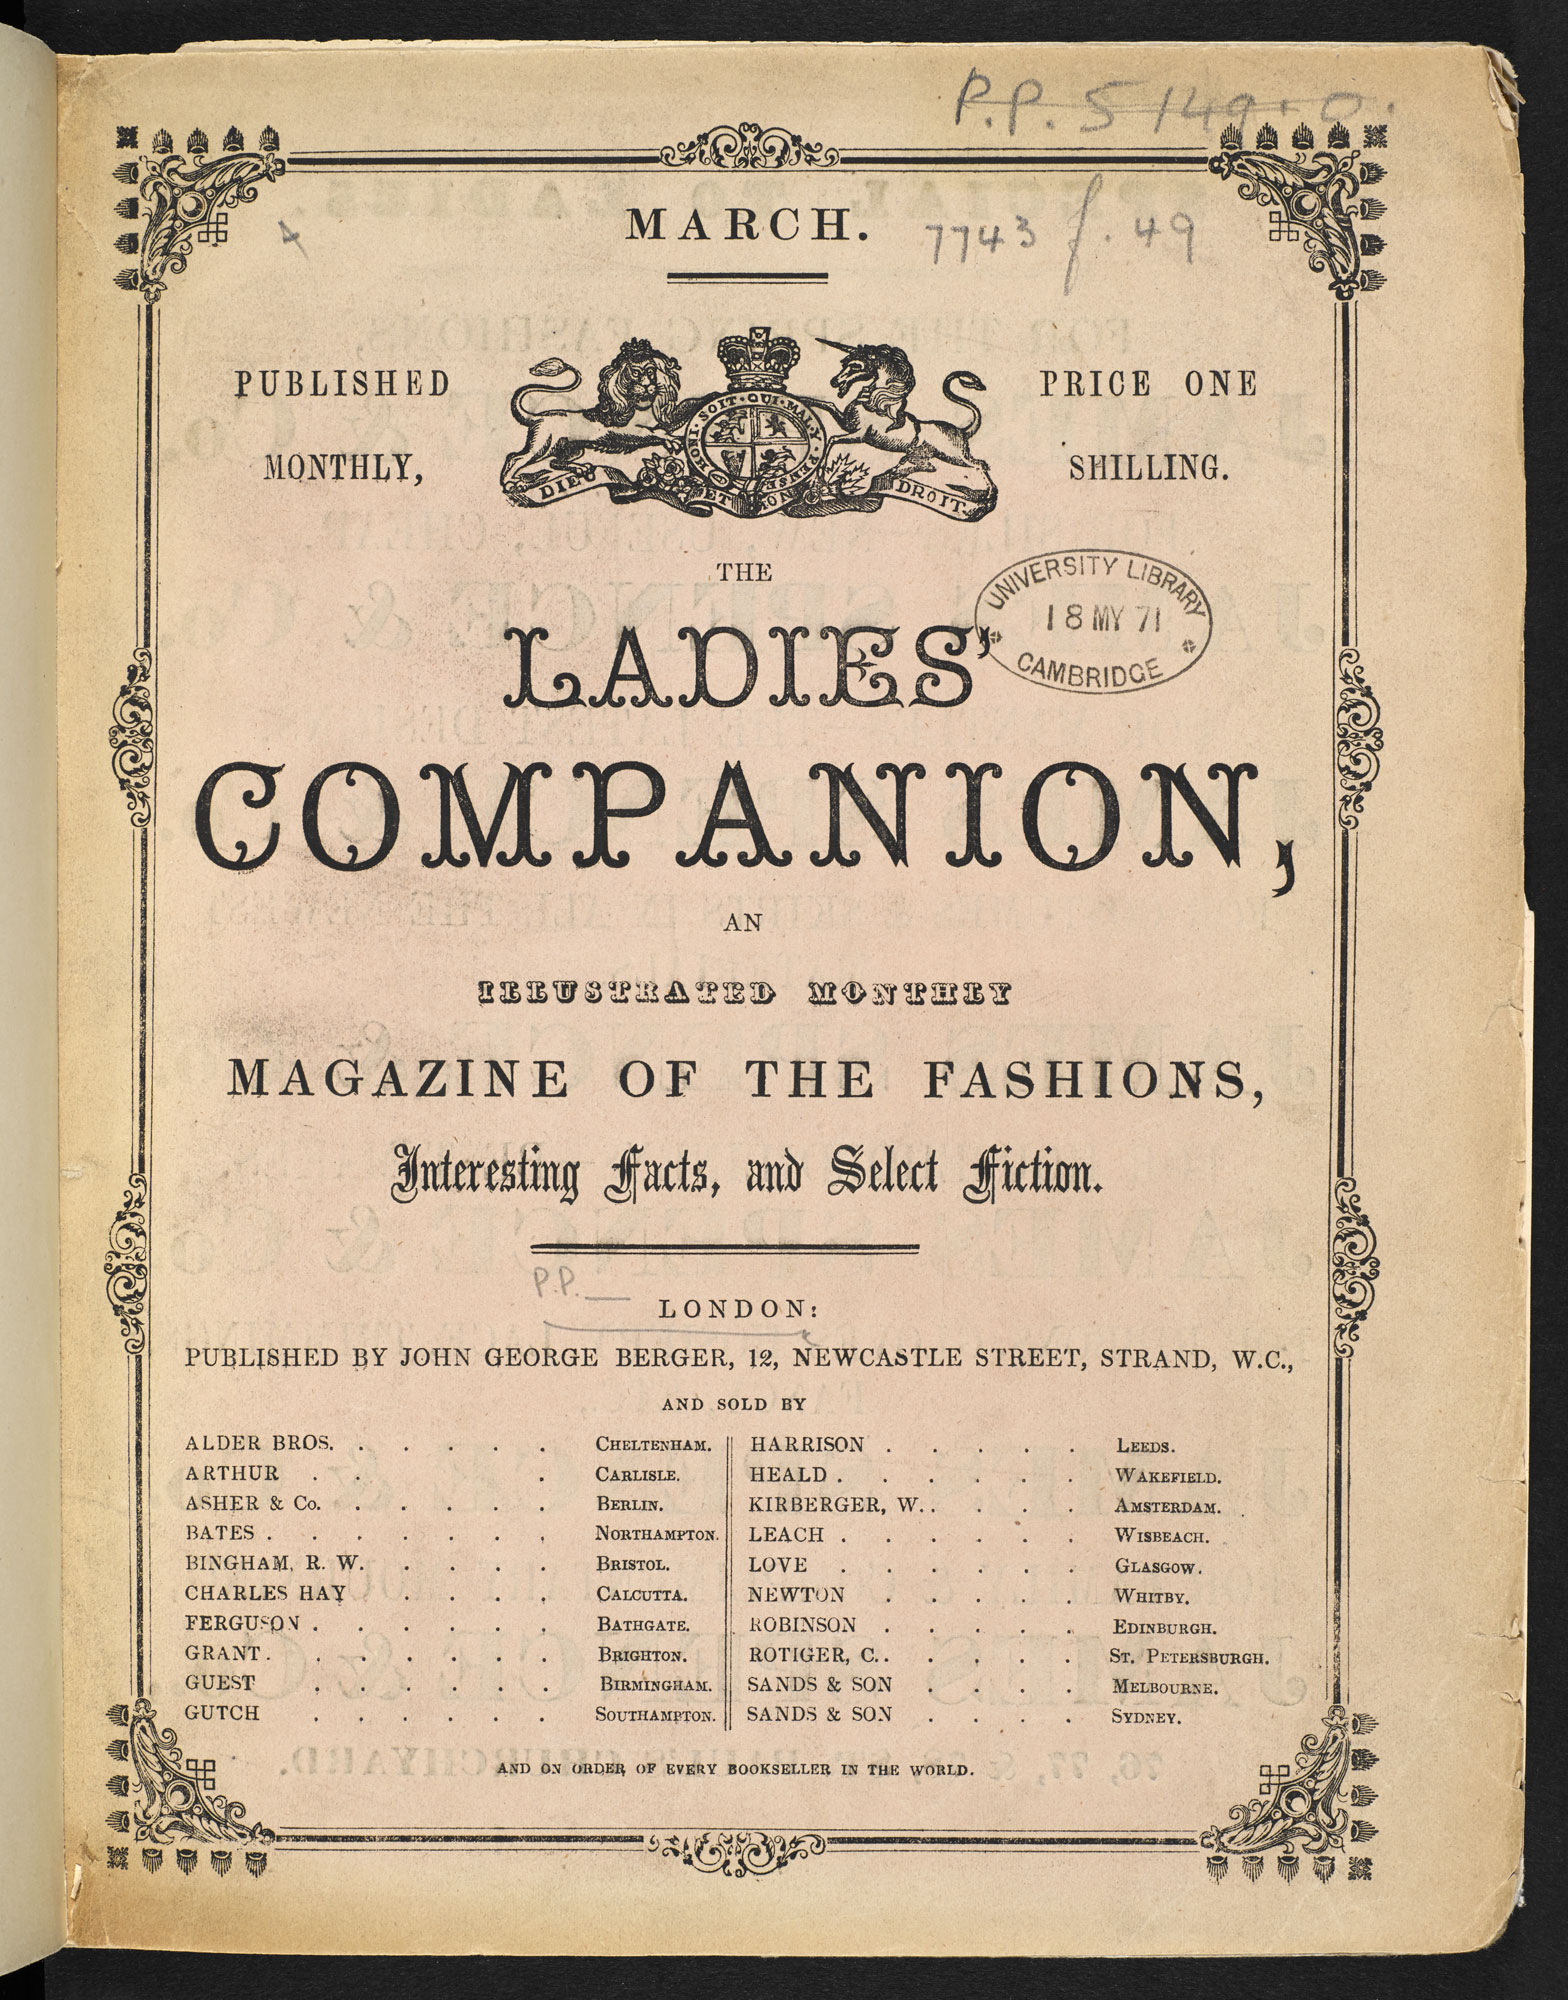 Monthly magazine, The Ladies Companion [page: title page]